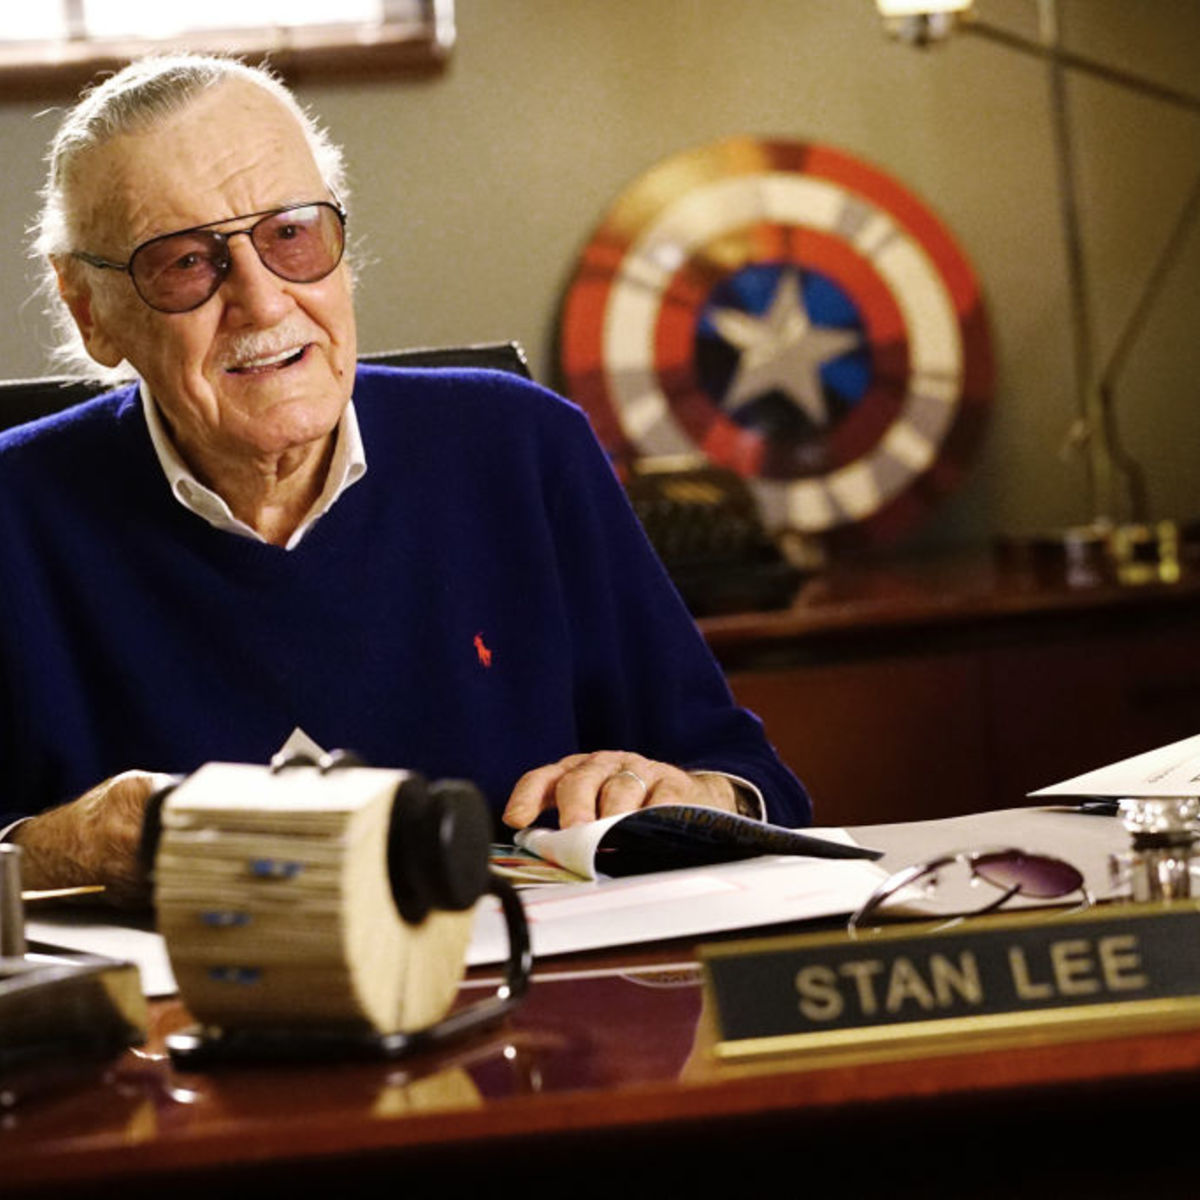 stanleeunderrated.jpg